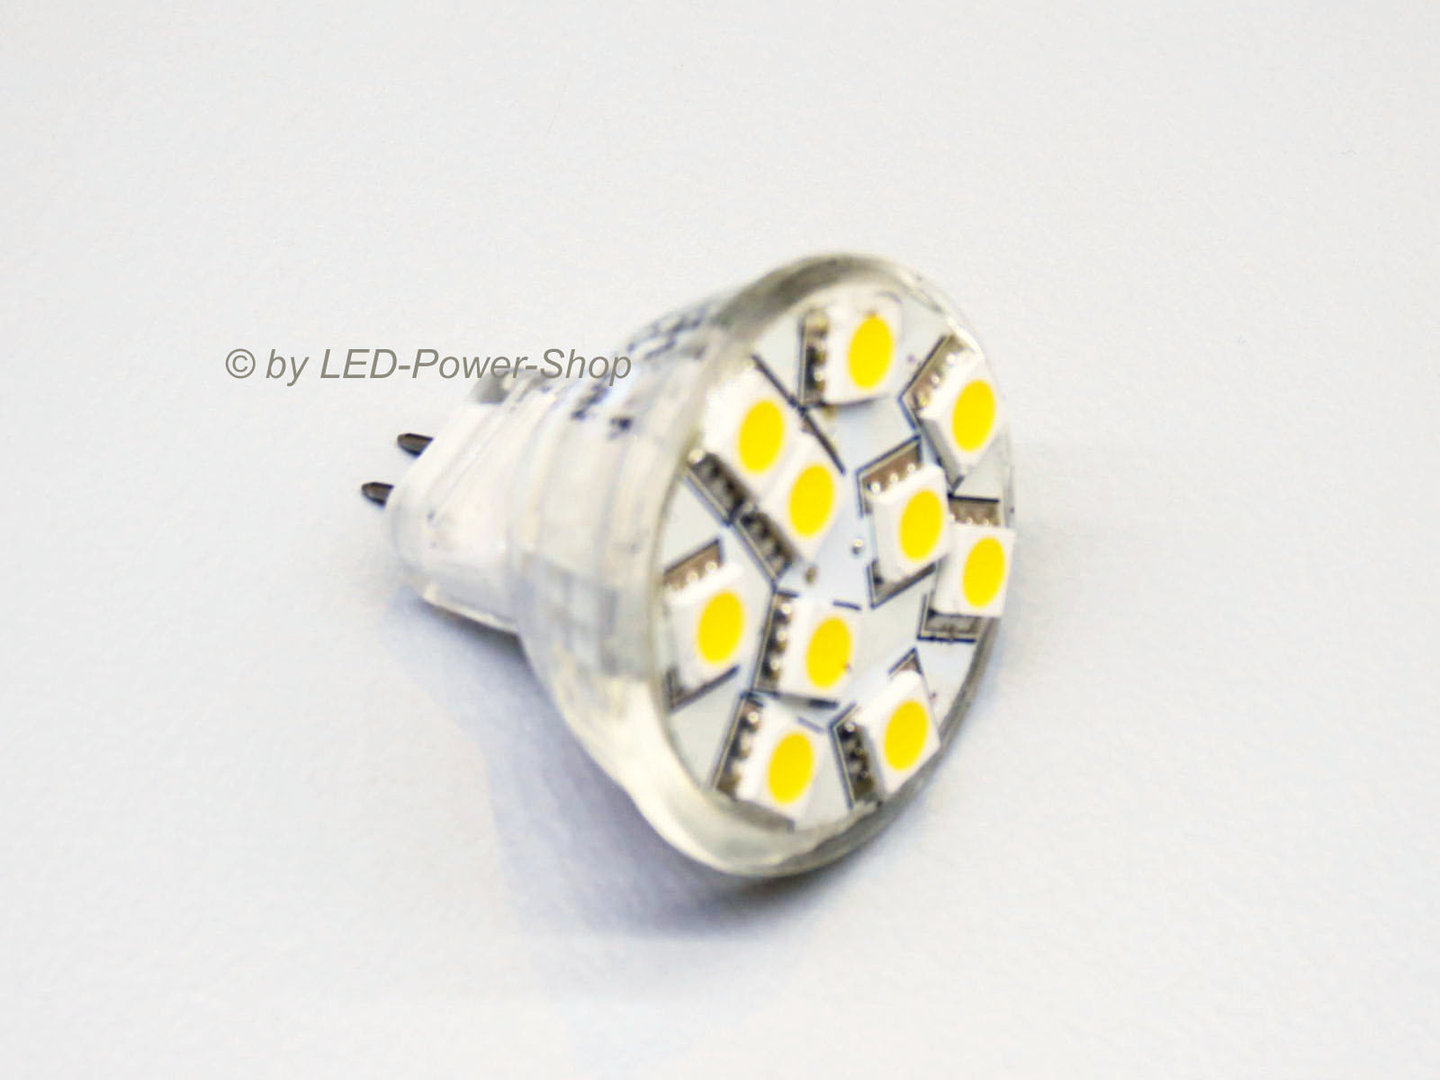 MR11 10 LED SMD 5mm 10-30V warmweiß